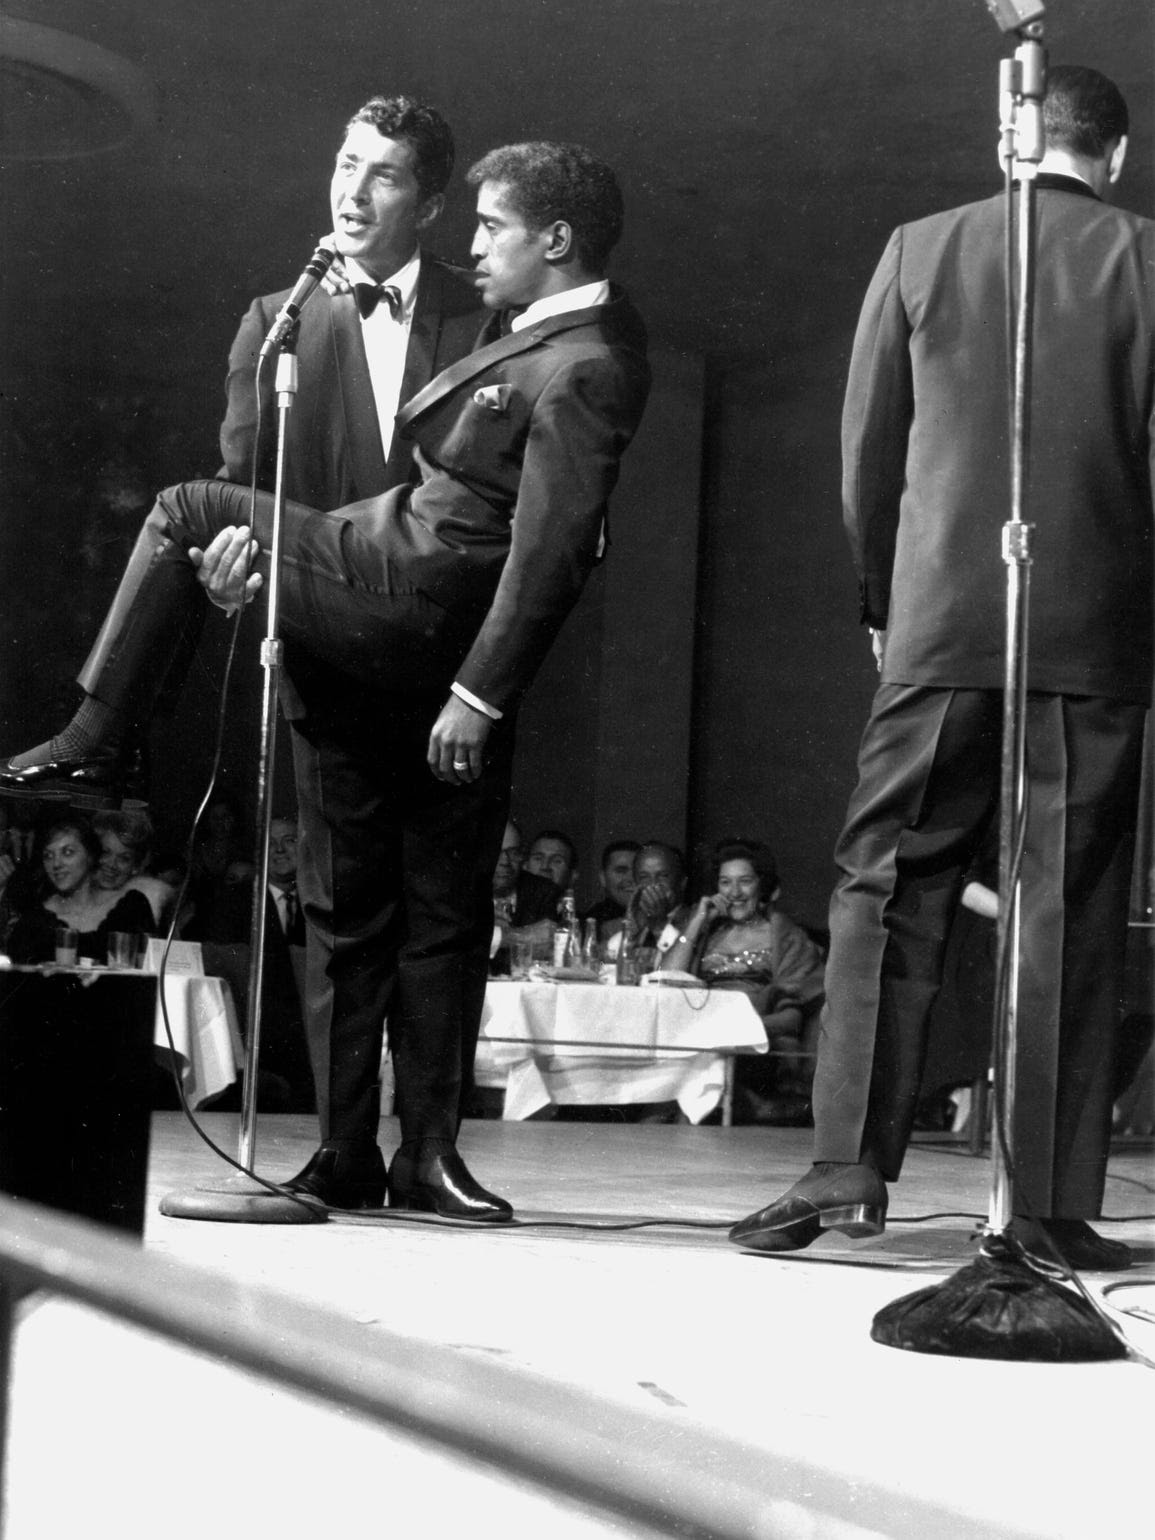 Dean Martin carries Sammy Davis Jr. during their nightly